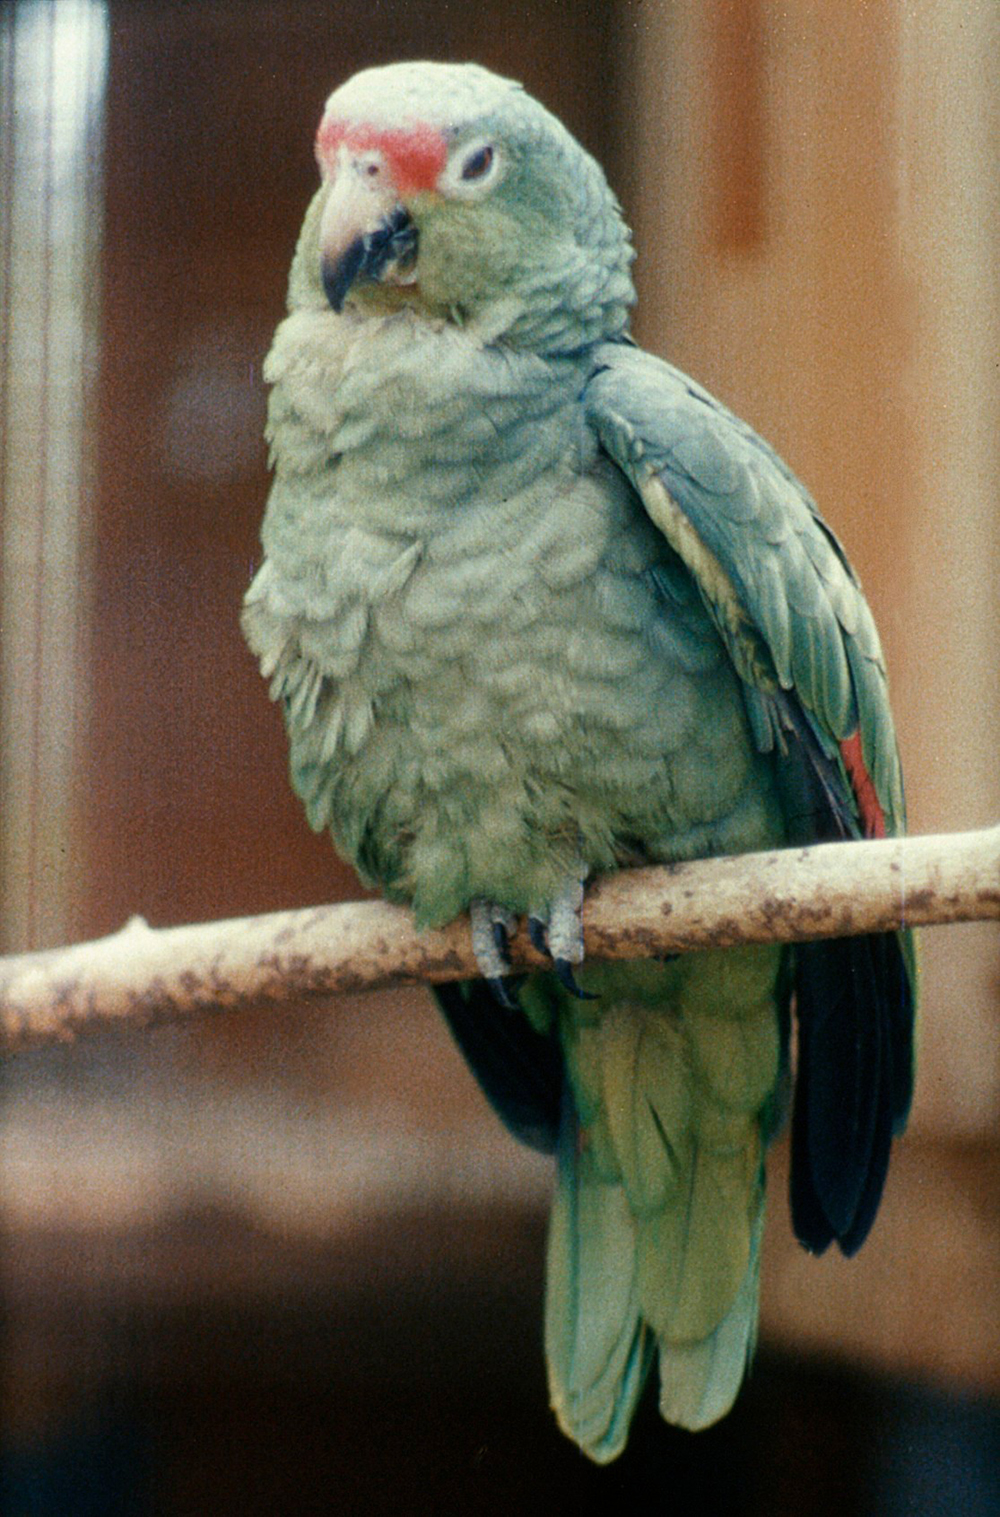 Amazon parrot with psittacosis. Royal Veterinary College (CC BY-NC 4.0).